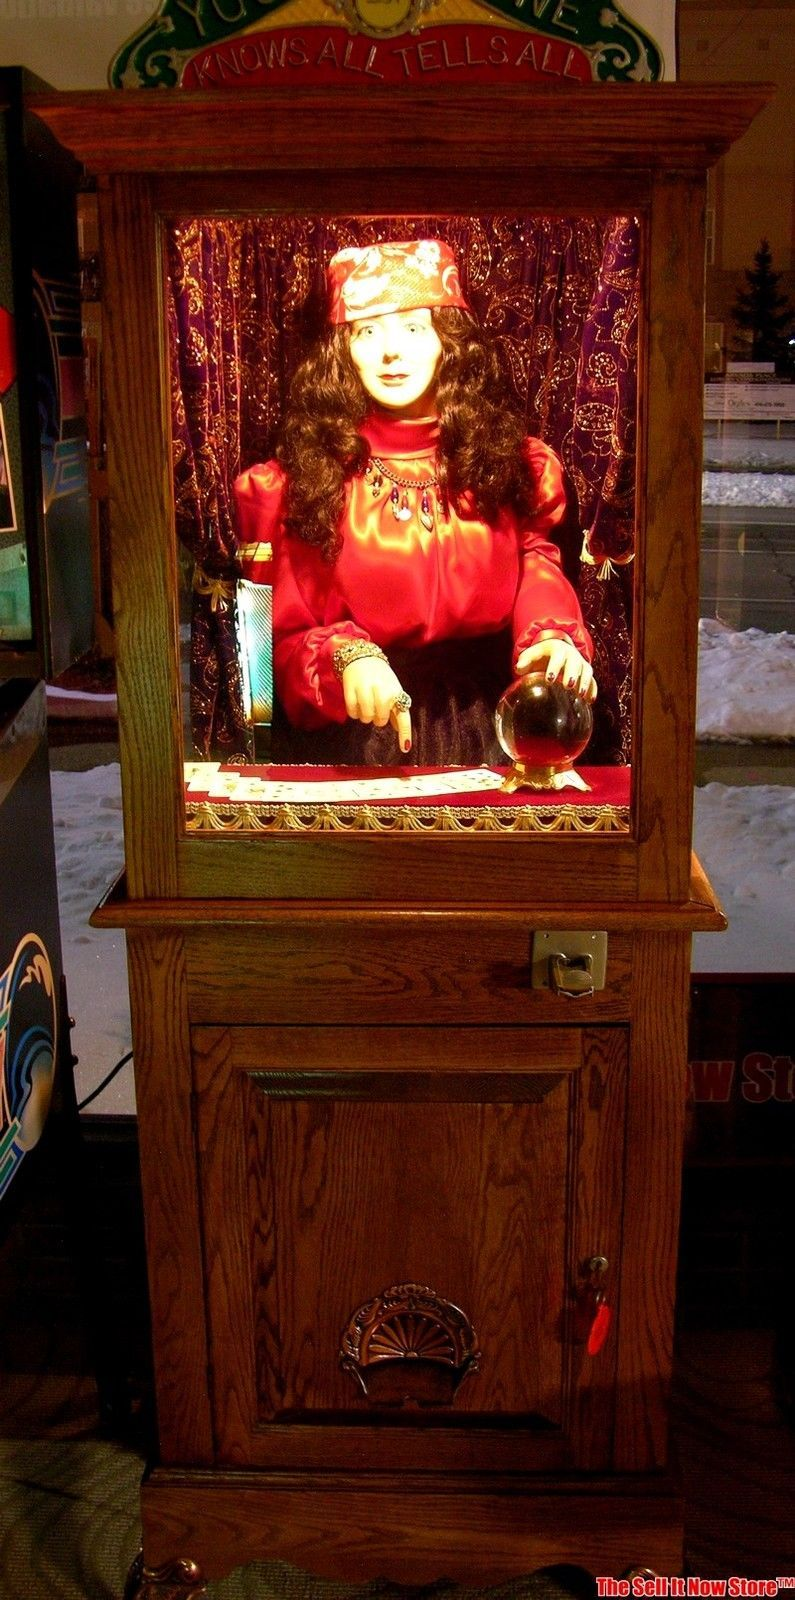 This machine was restored 30 years ago by a local artisan, and most like the cabinet was probably made then and is not orginal.  This machine is coin operated and the gypsy moves her arm, her heart beats and then dispenses a card.  See video:  https://www.youtube.com/watch?v=aSB__ZG5Ots&feature=player_embedded